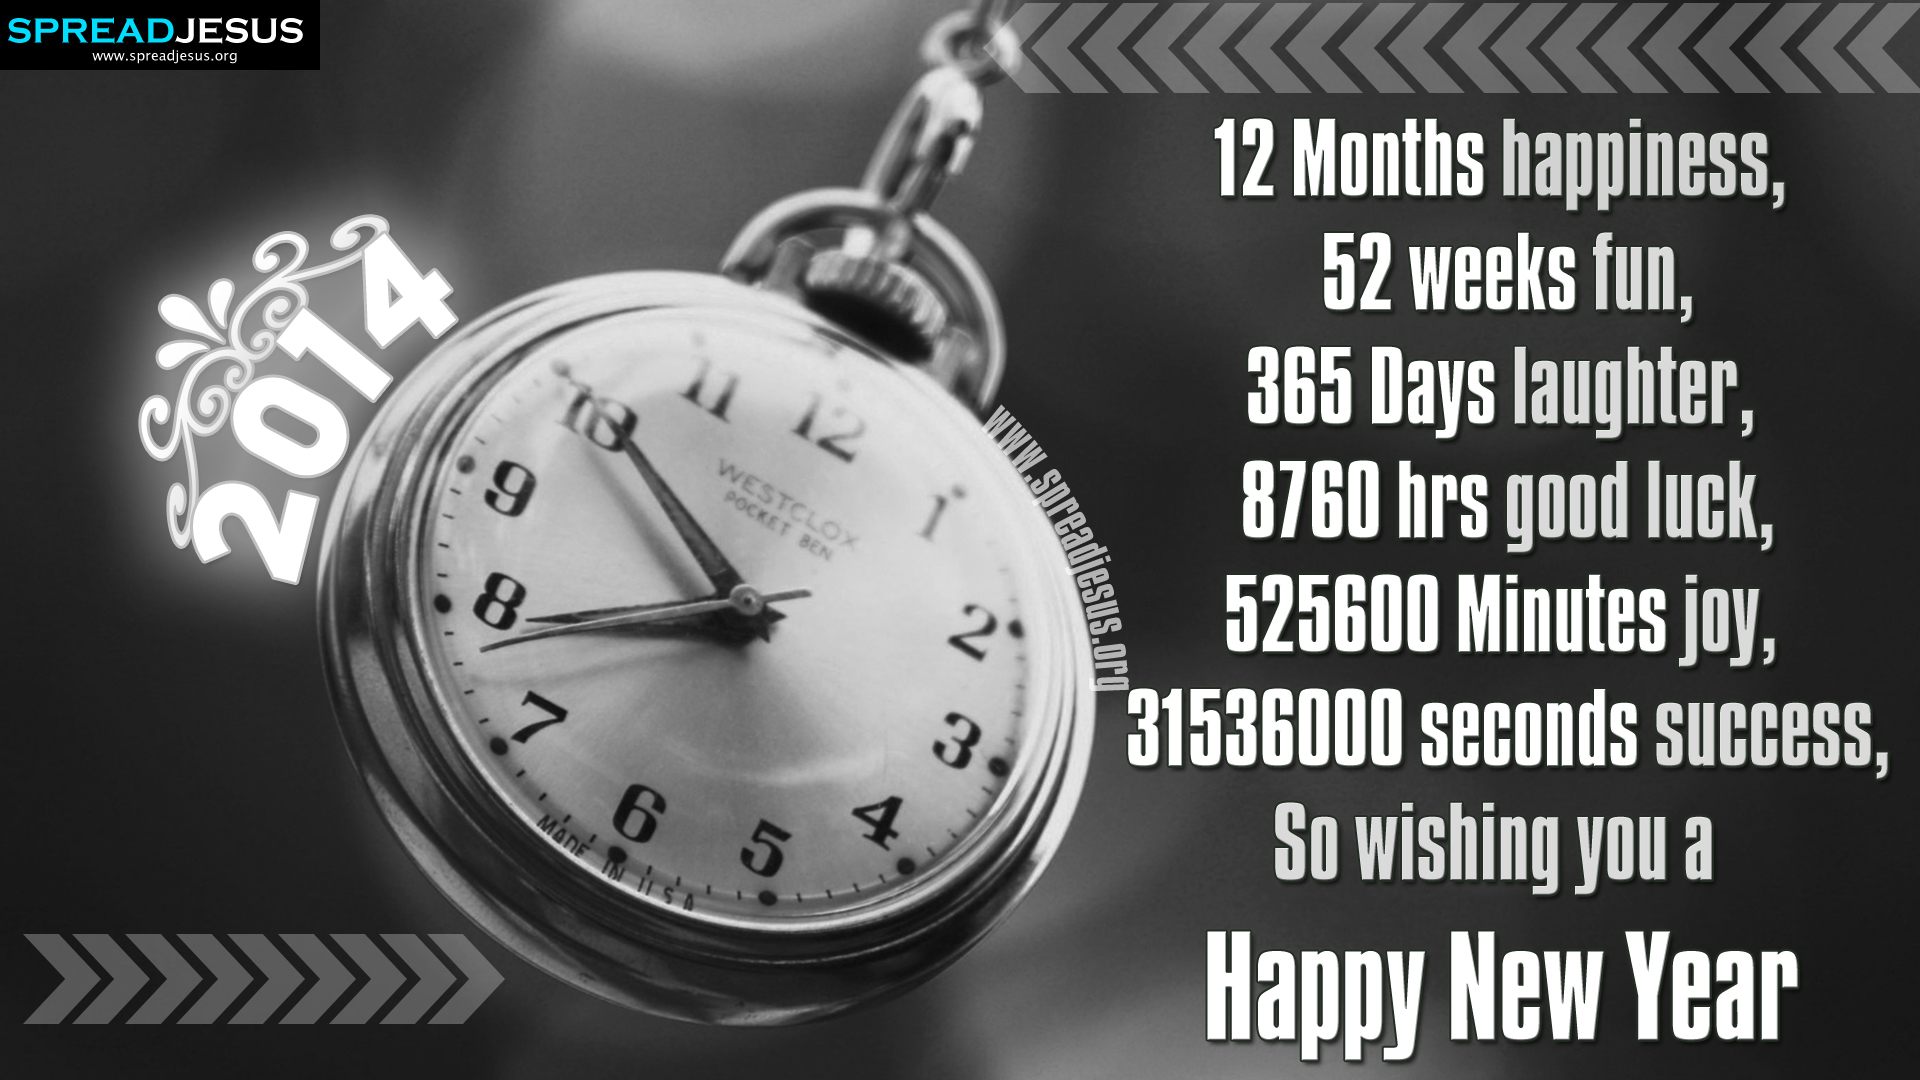 happy new year 2014 greetings hd-wallpapers